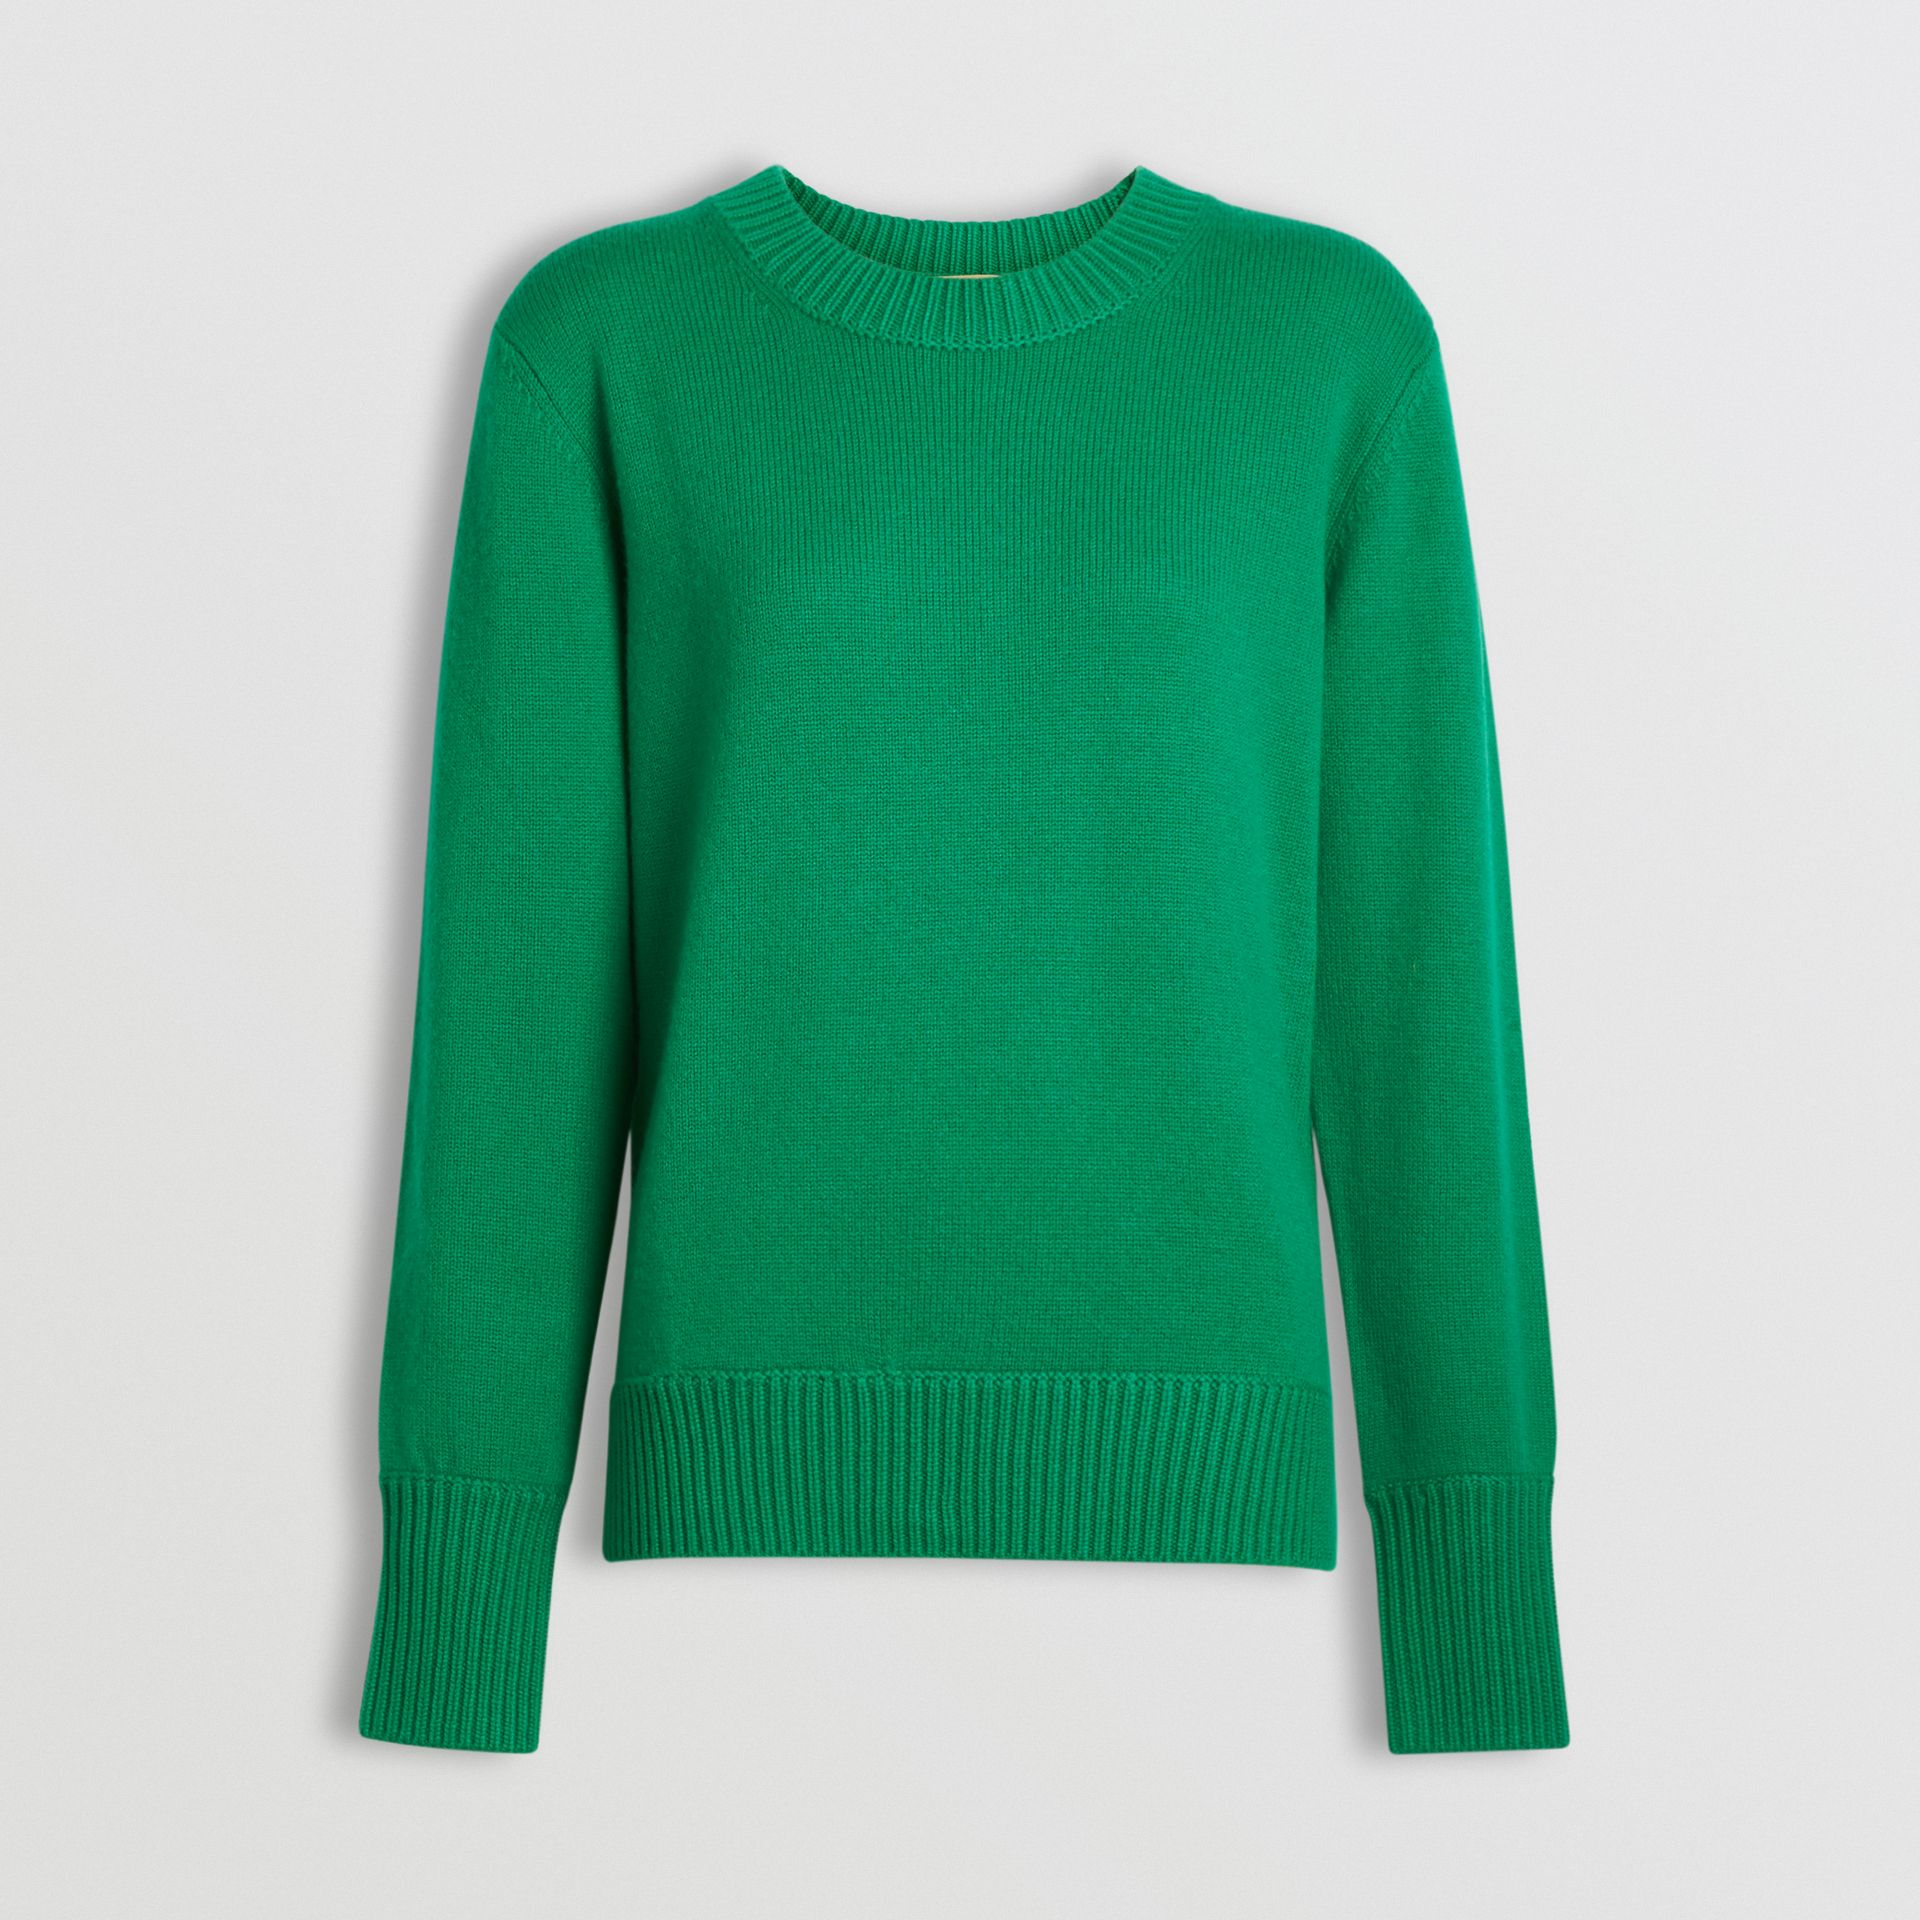 Archive Logo Appliqué Cashmere Sweater in Vibrant Green - Women | Burberry Singapore - gallery image 3